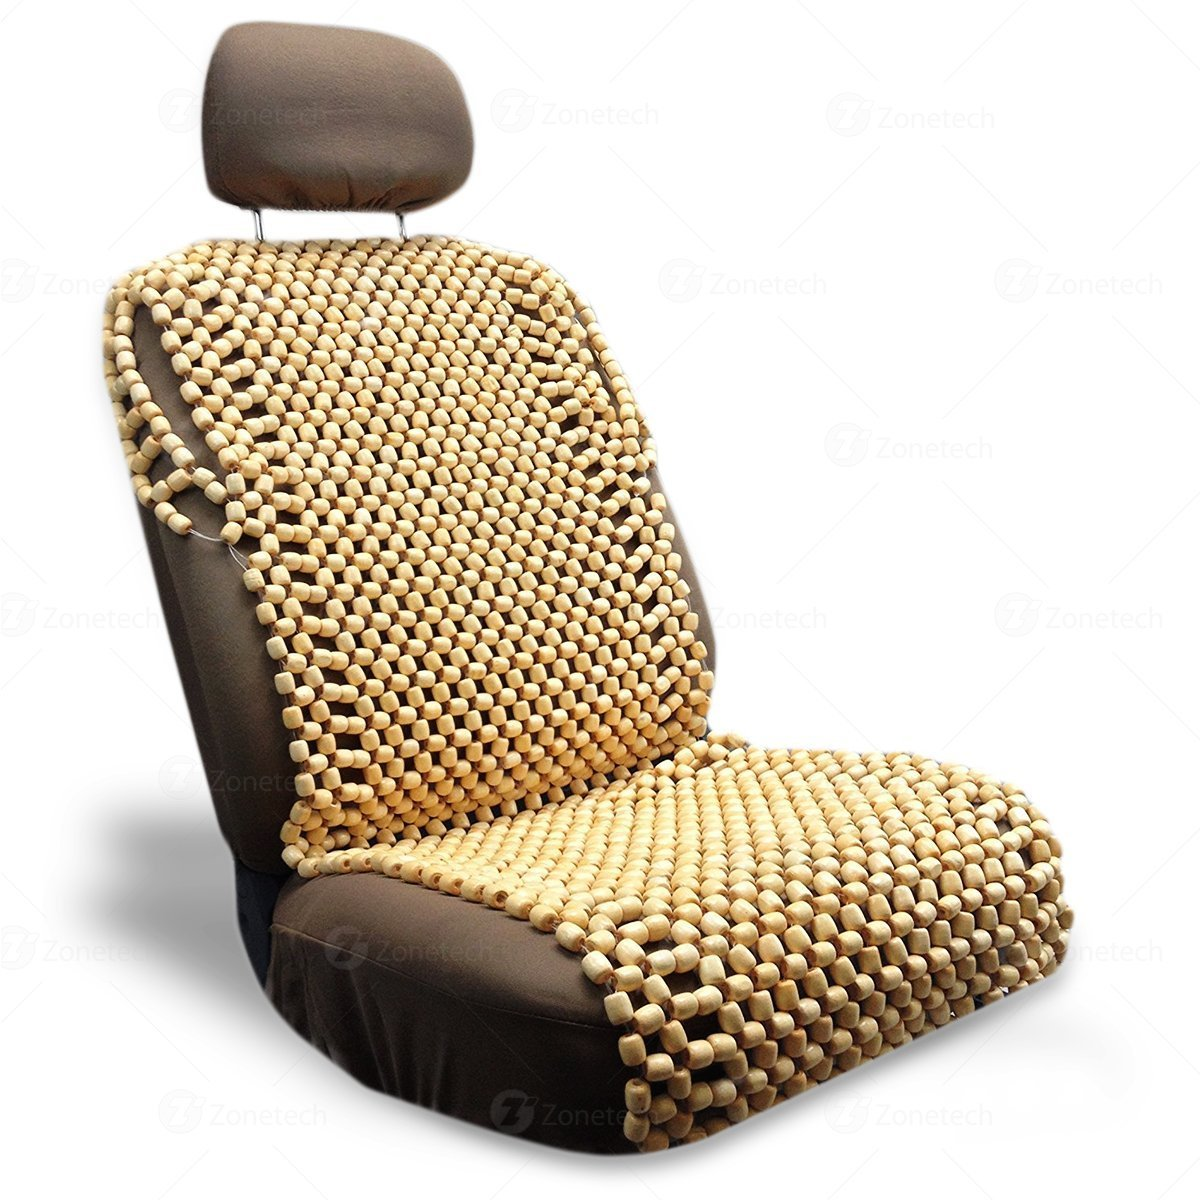 Zone Tech Natural Royal Wood Bead Seat Cover Massage Cool Premium Comfort Cushion - Reduces Fatigue the Car or Truck or Your Office Chair Comfort Wheels